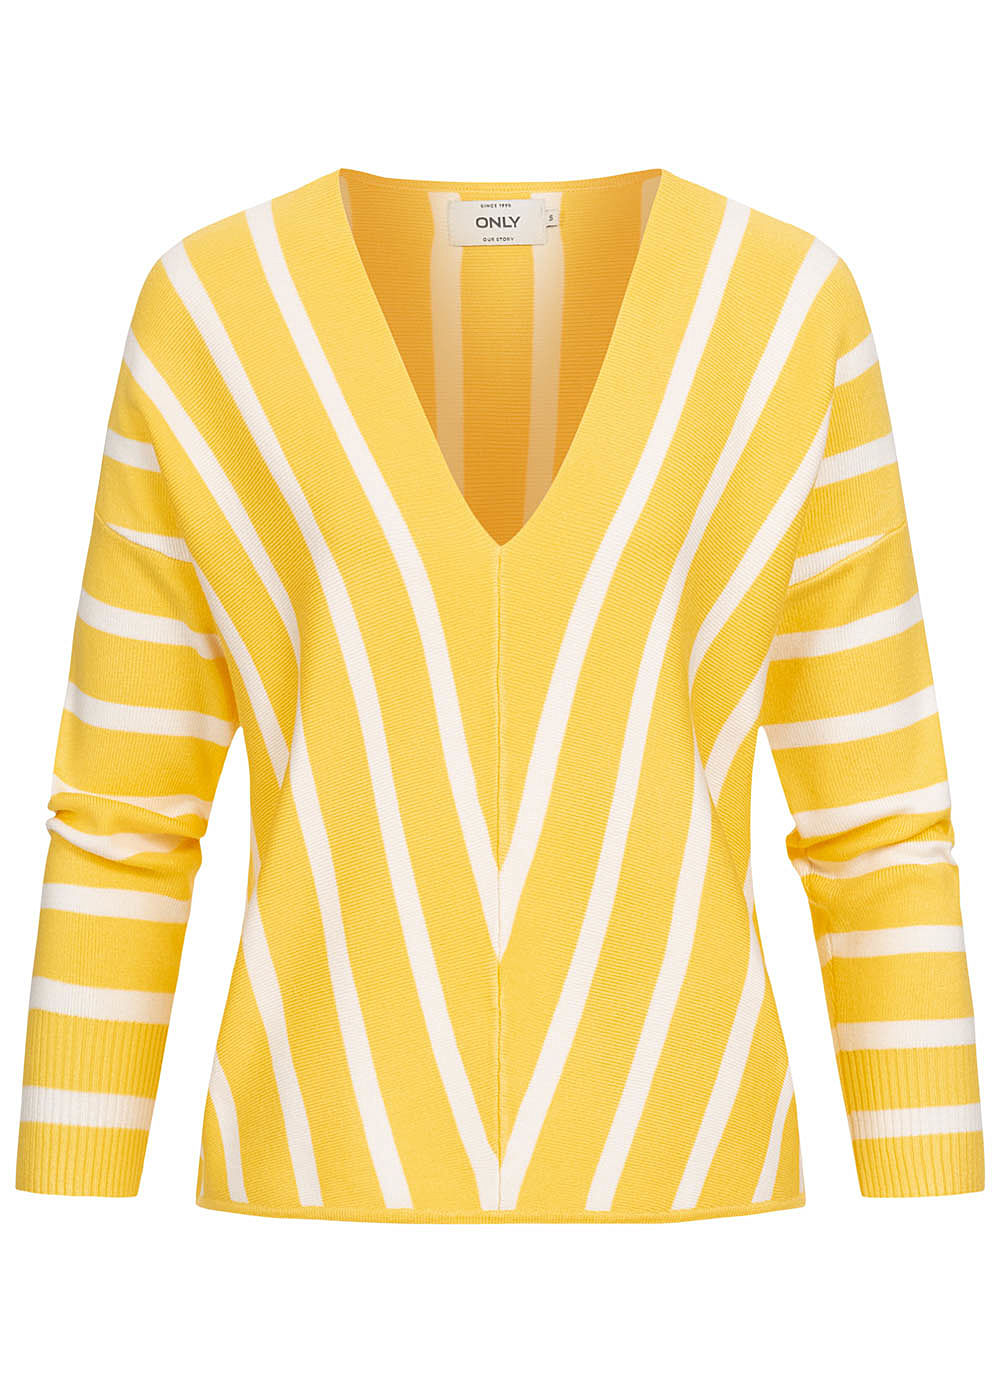 ONLY Damen 7/8 Arm Arrow V-Neck Pullover Streifen Muster lemon drop gelb weiss - Art.-Nr.: 19125479